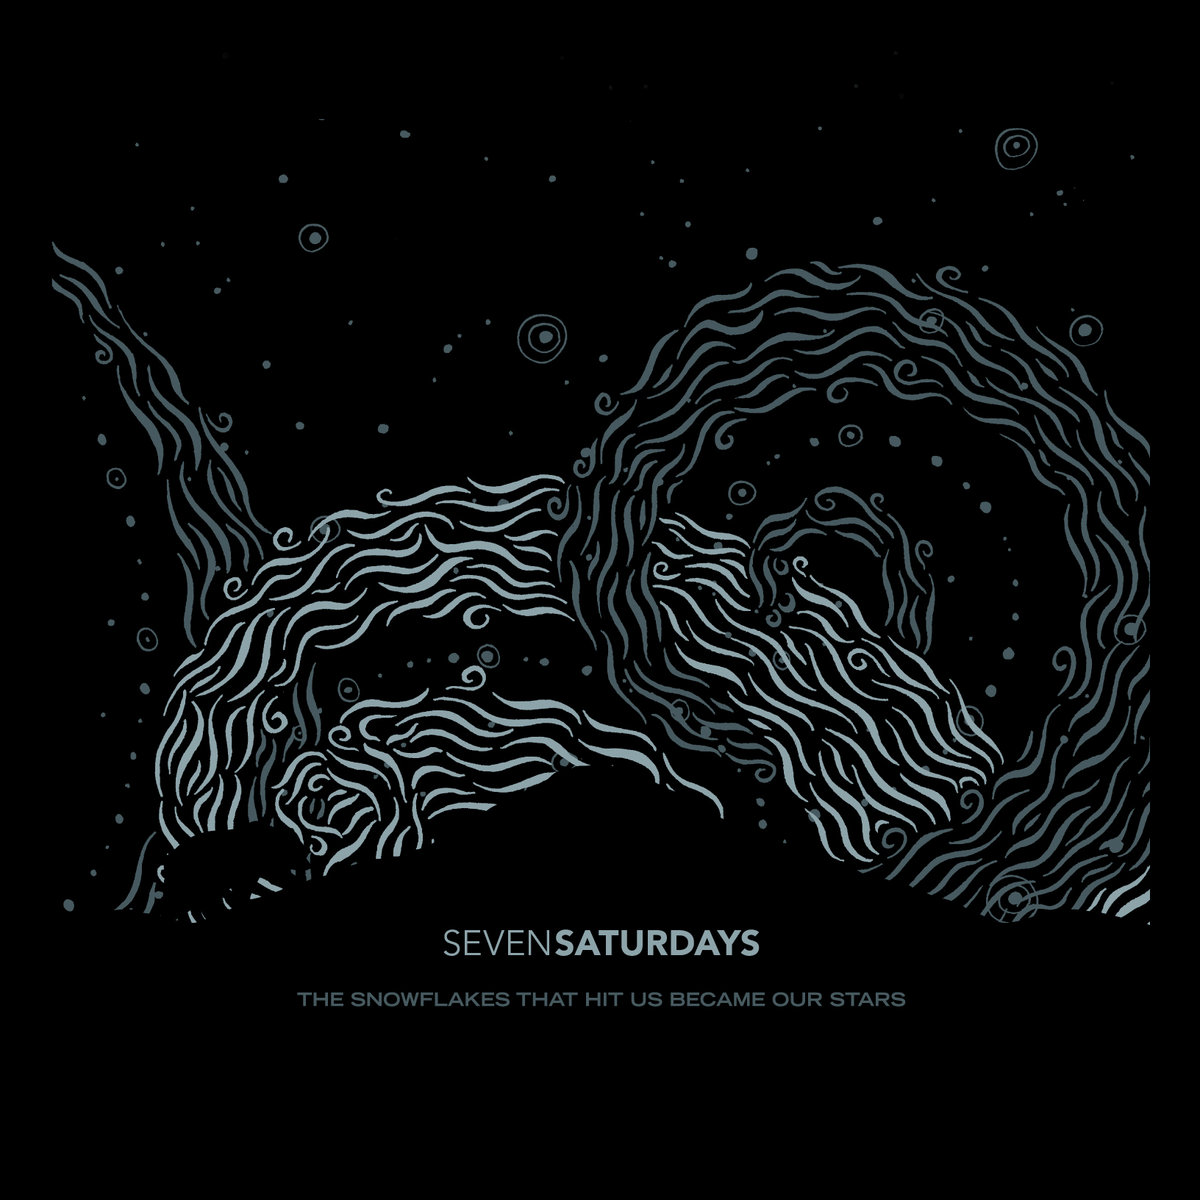 The Snowflakes That Hit Us Became Our Stars | Seven Saturdays